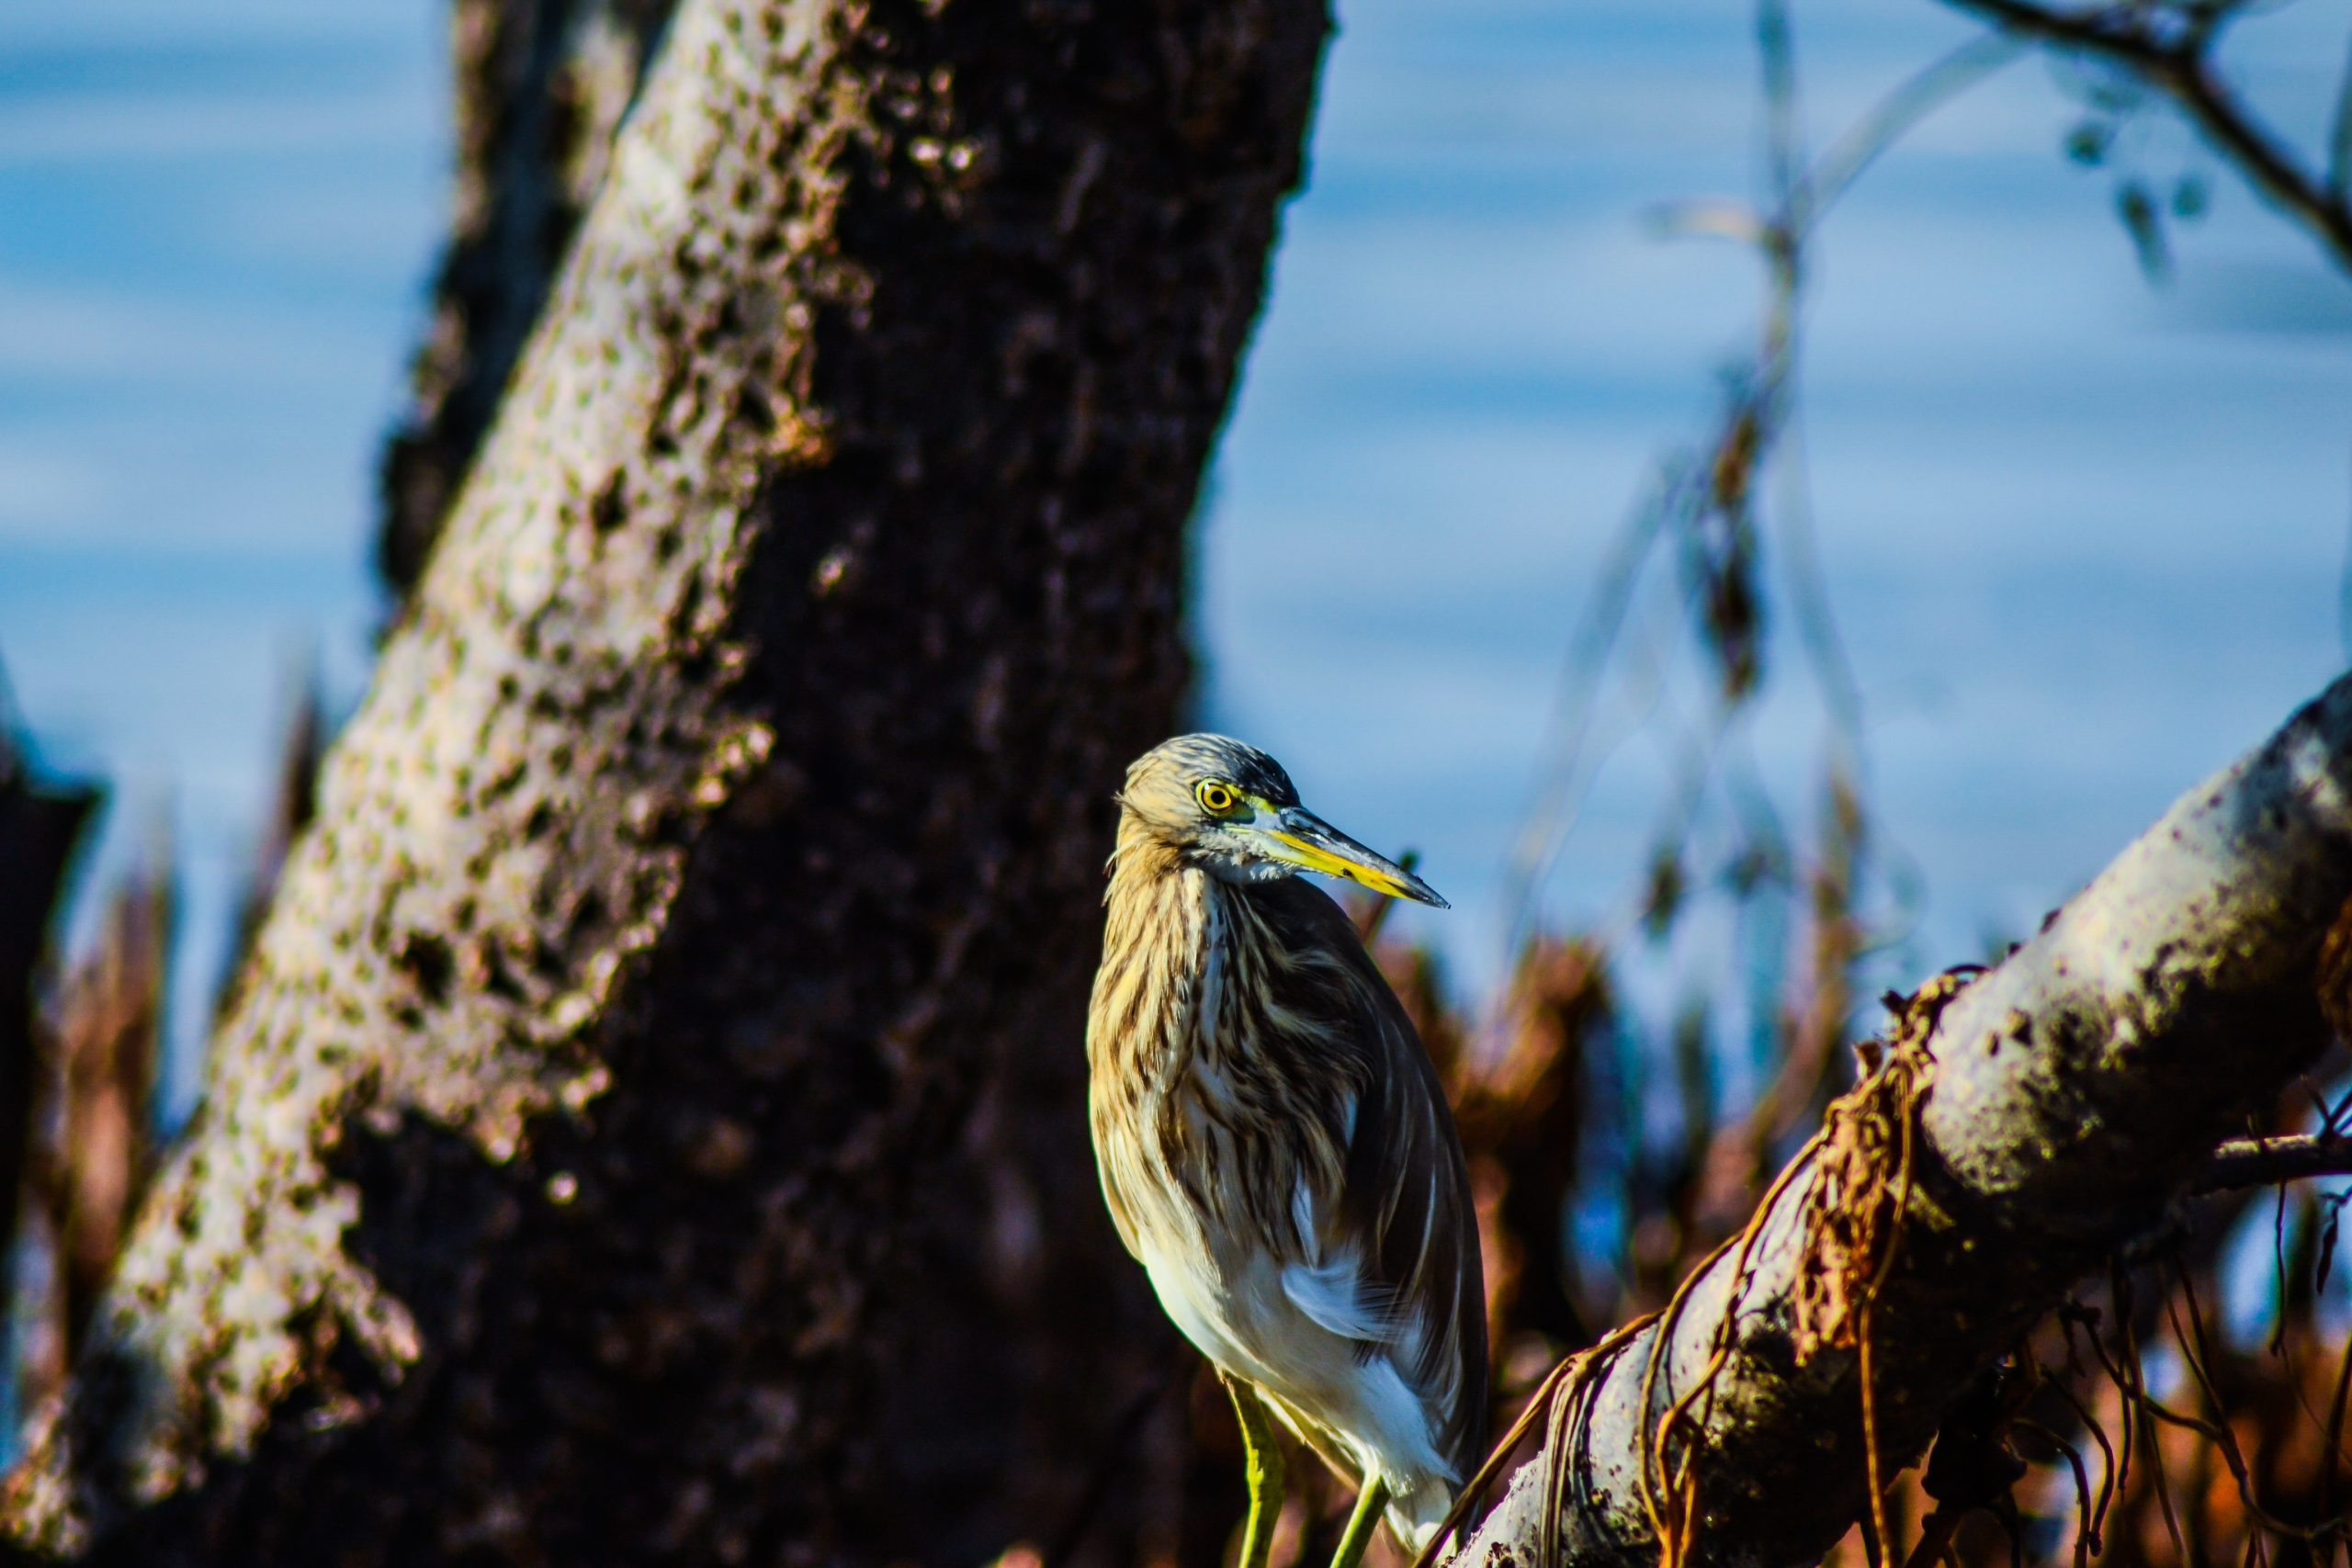 Pond heron on a branch